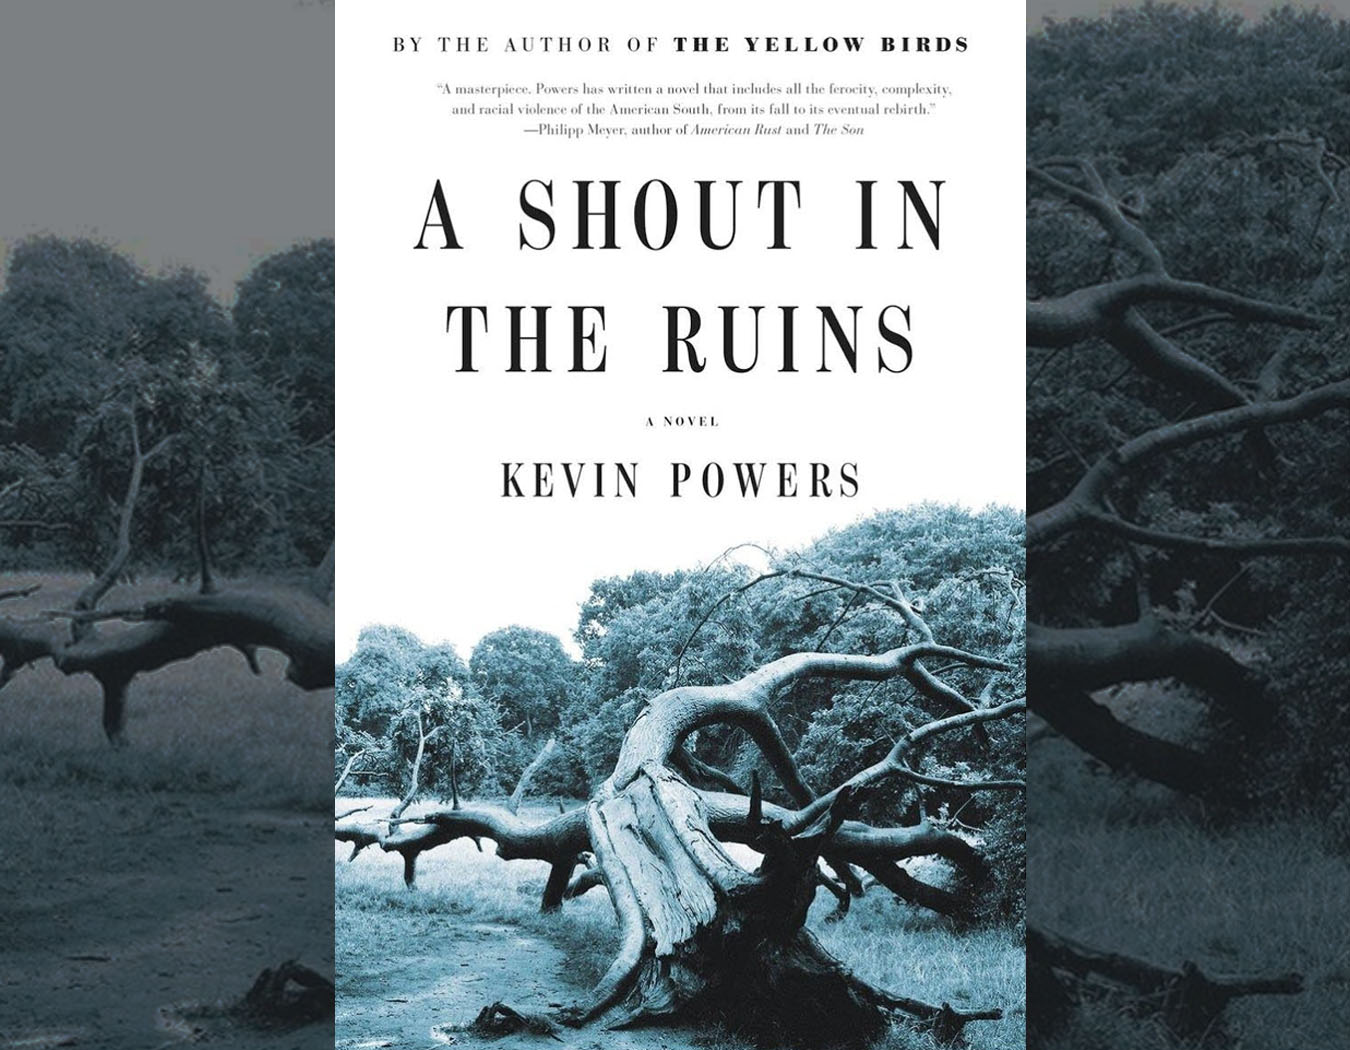 A Shout in the Ruins- IMAGE3.jpg